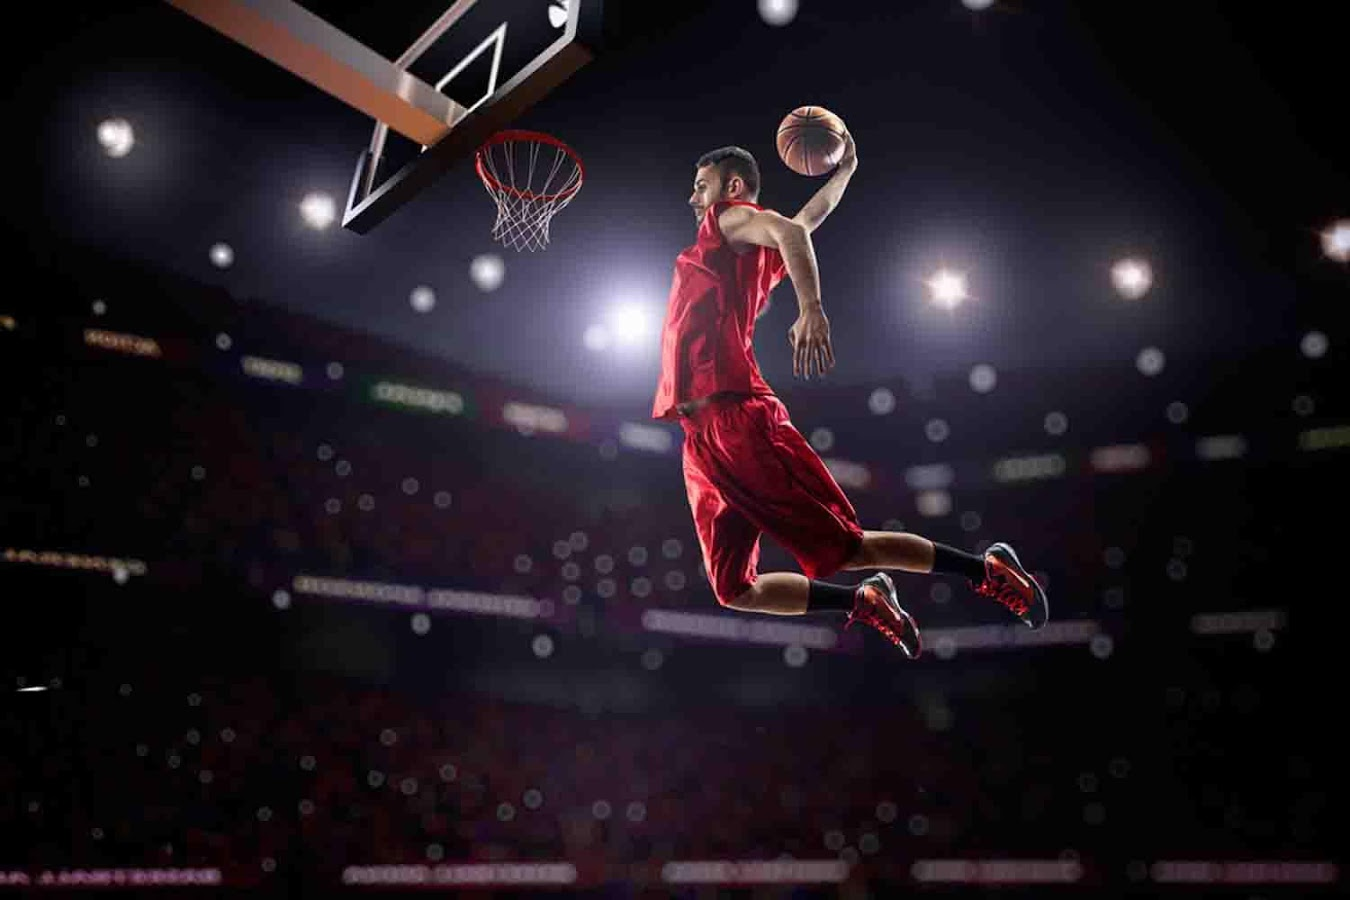 Best-Basketball-Shoes-player dunking the ball